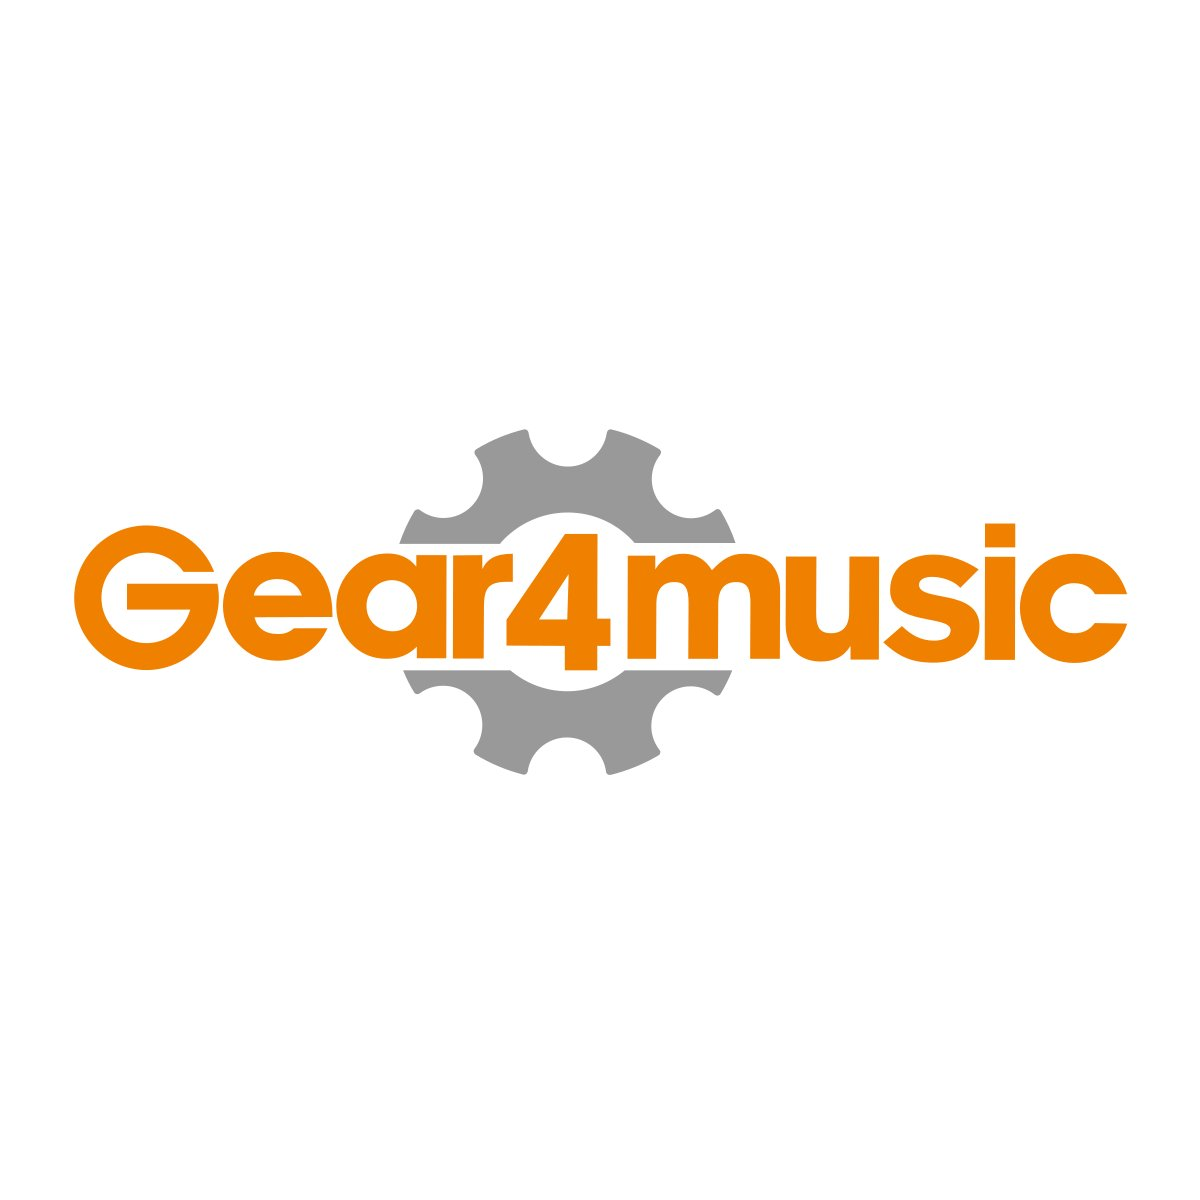 5-strunski bendžo od Gear4music